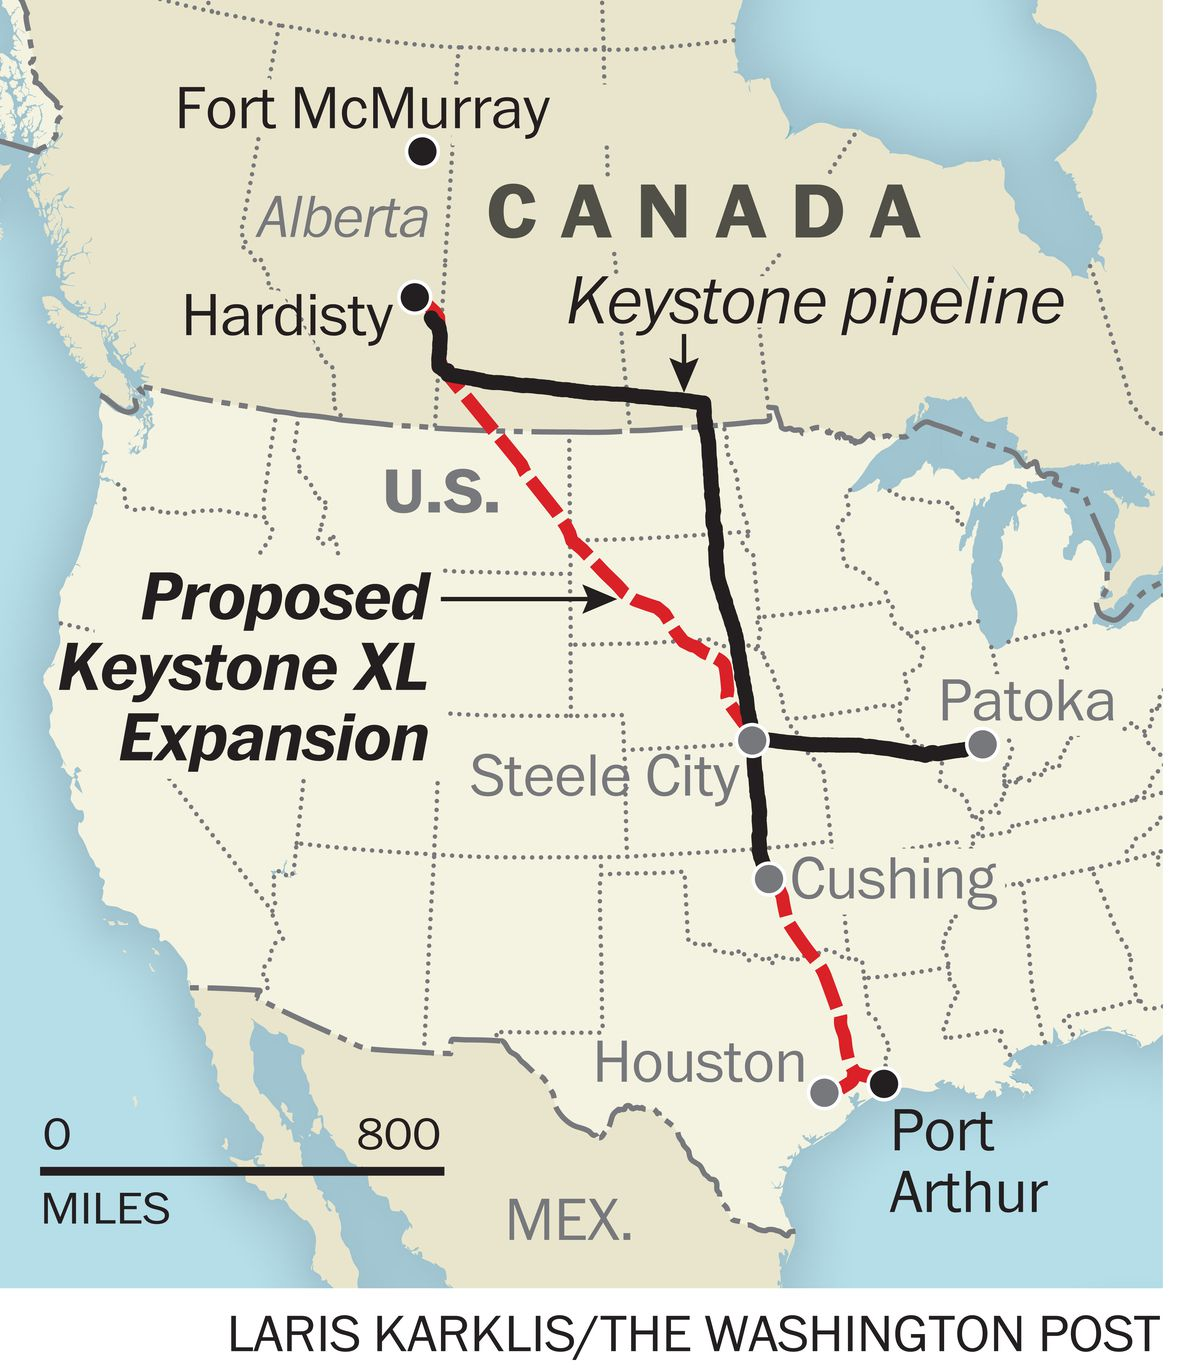 A map of the US and Canada shows the proposed path for the Keystone XL pipeline south from Hardisty, Alberta through Montana and into Steele City, Nebraska where it joins existing infrastructure to flow south to Port Arthur, Texas where it will be sent to refineries.